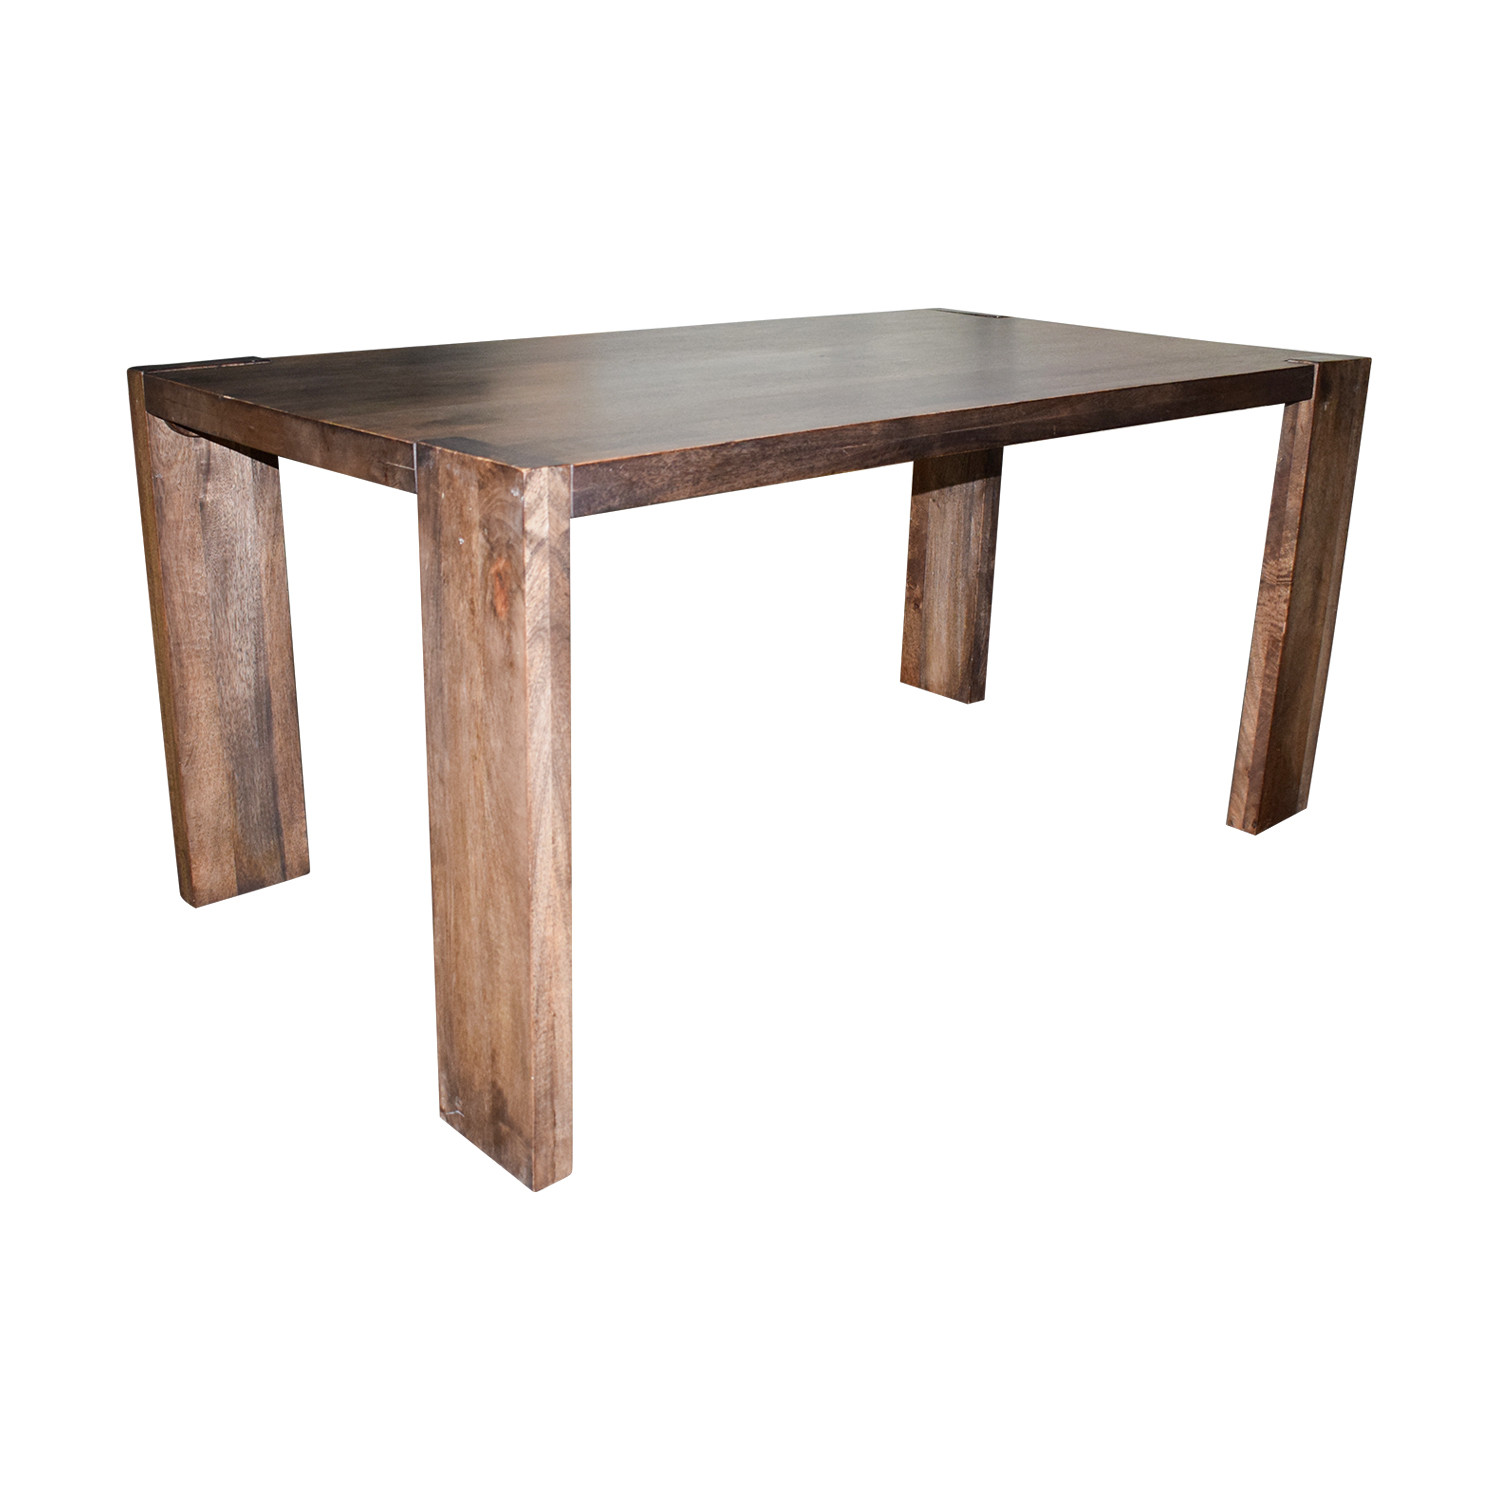 Best ideas about Cb2 Dining Table . Save or Pin OFF CB2 CB2 Rustic Wood Dining Table Tables Now.